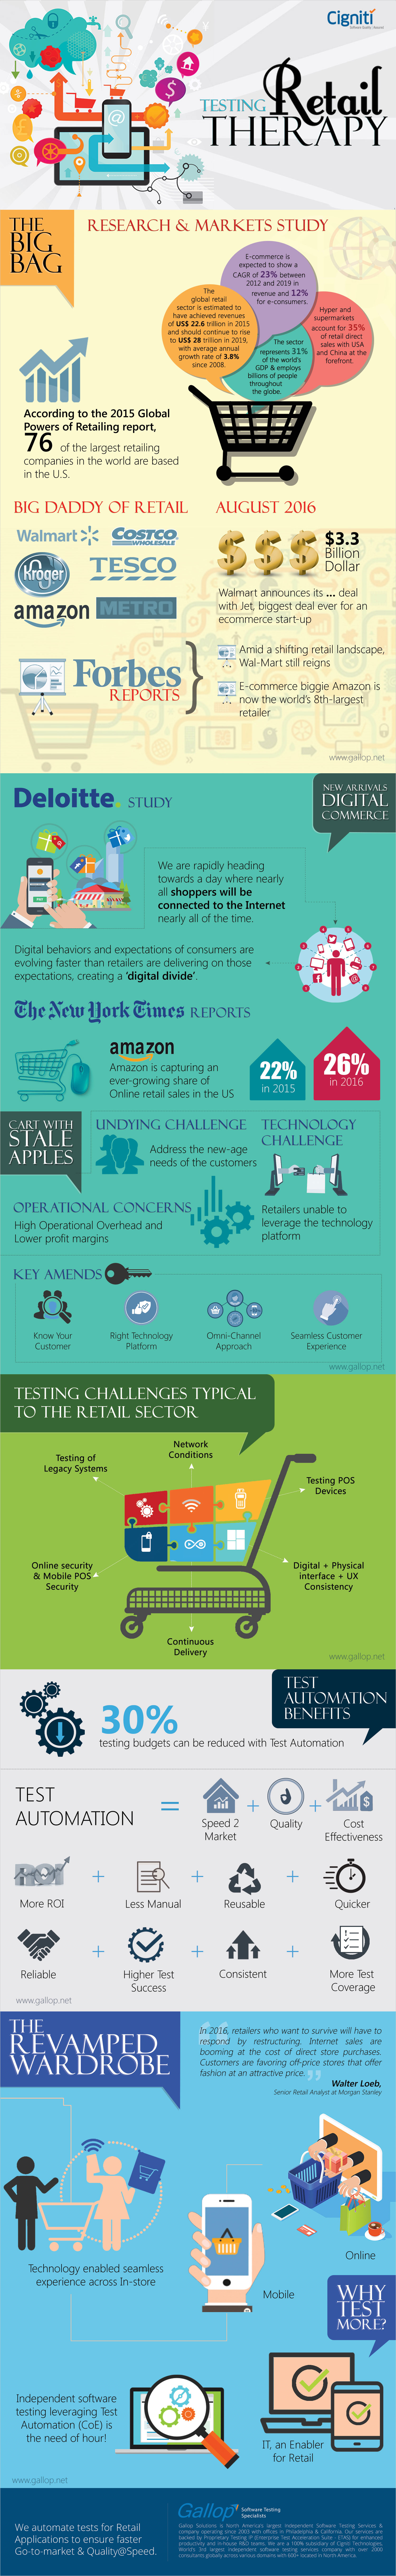 Testing-the-retail-therapy-Infographic